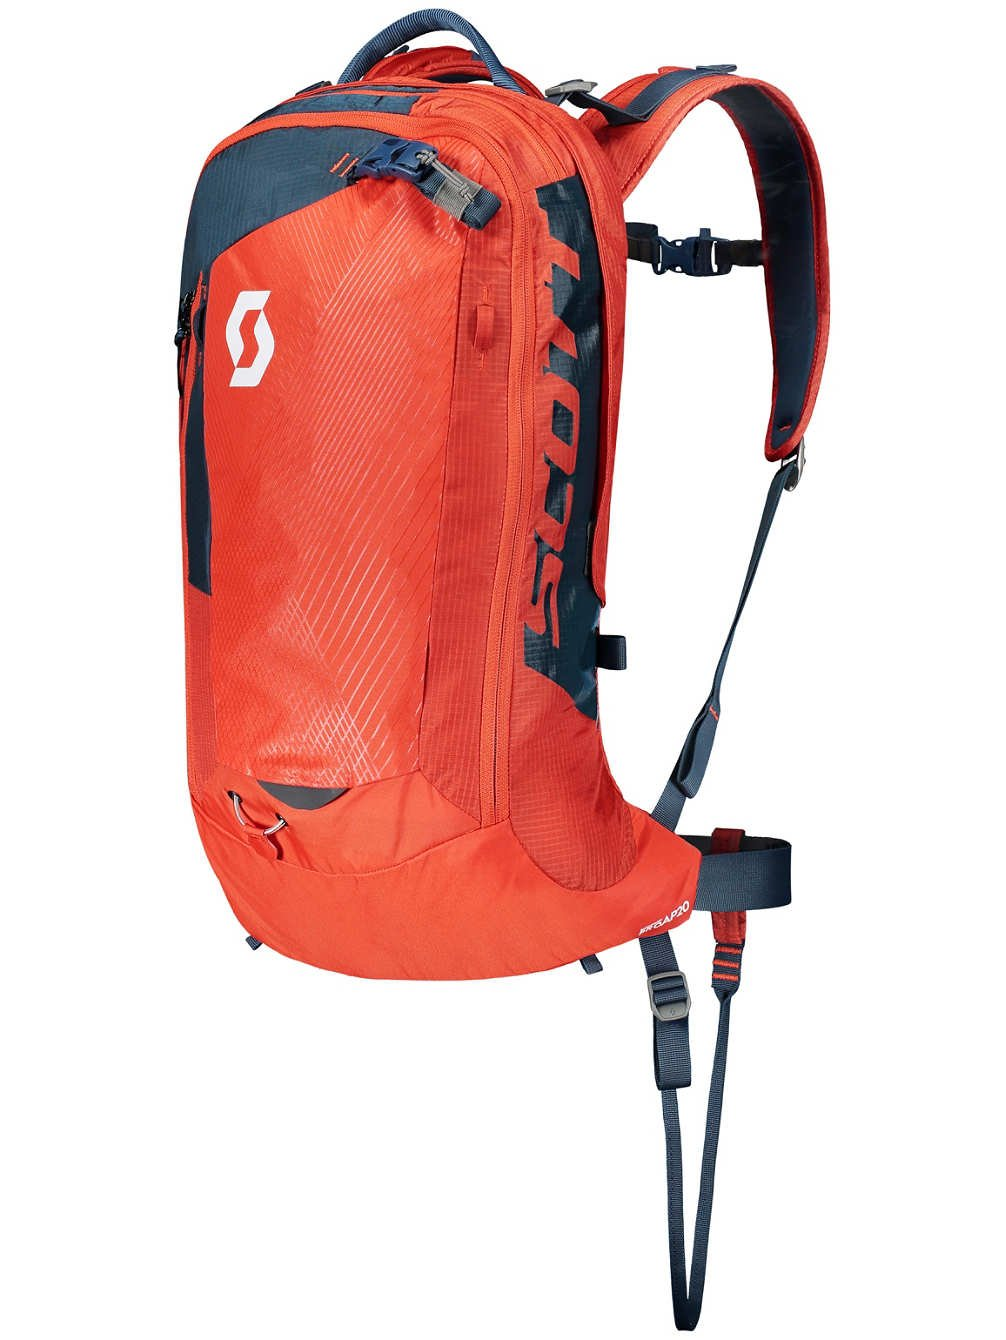 Scott Lawinenrucksack Backcountry Pro AP 20L Kit Rucksack